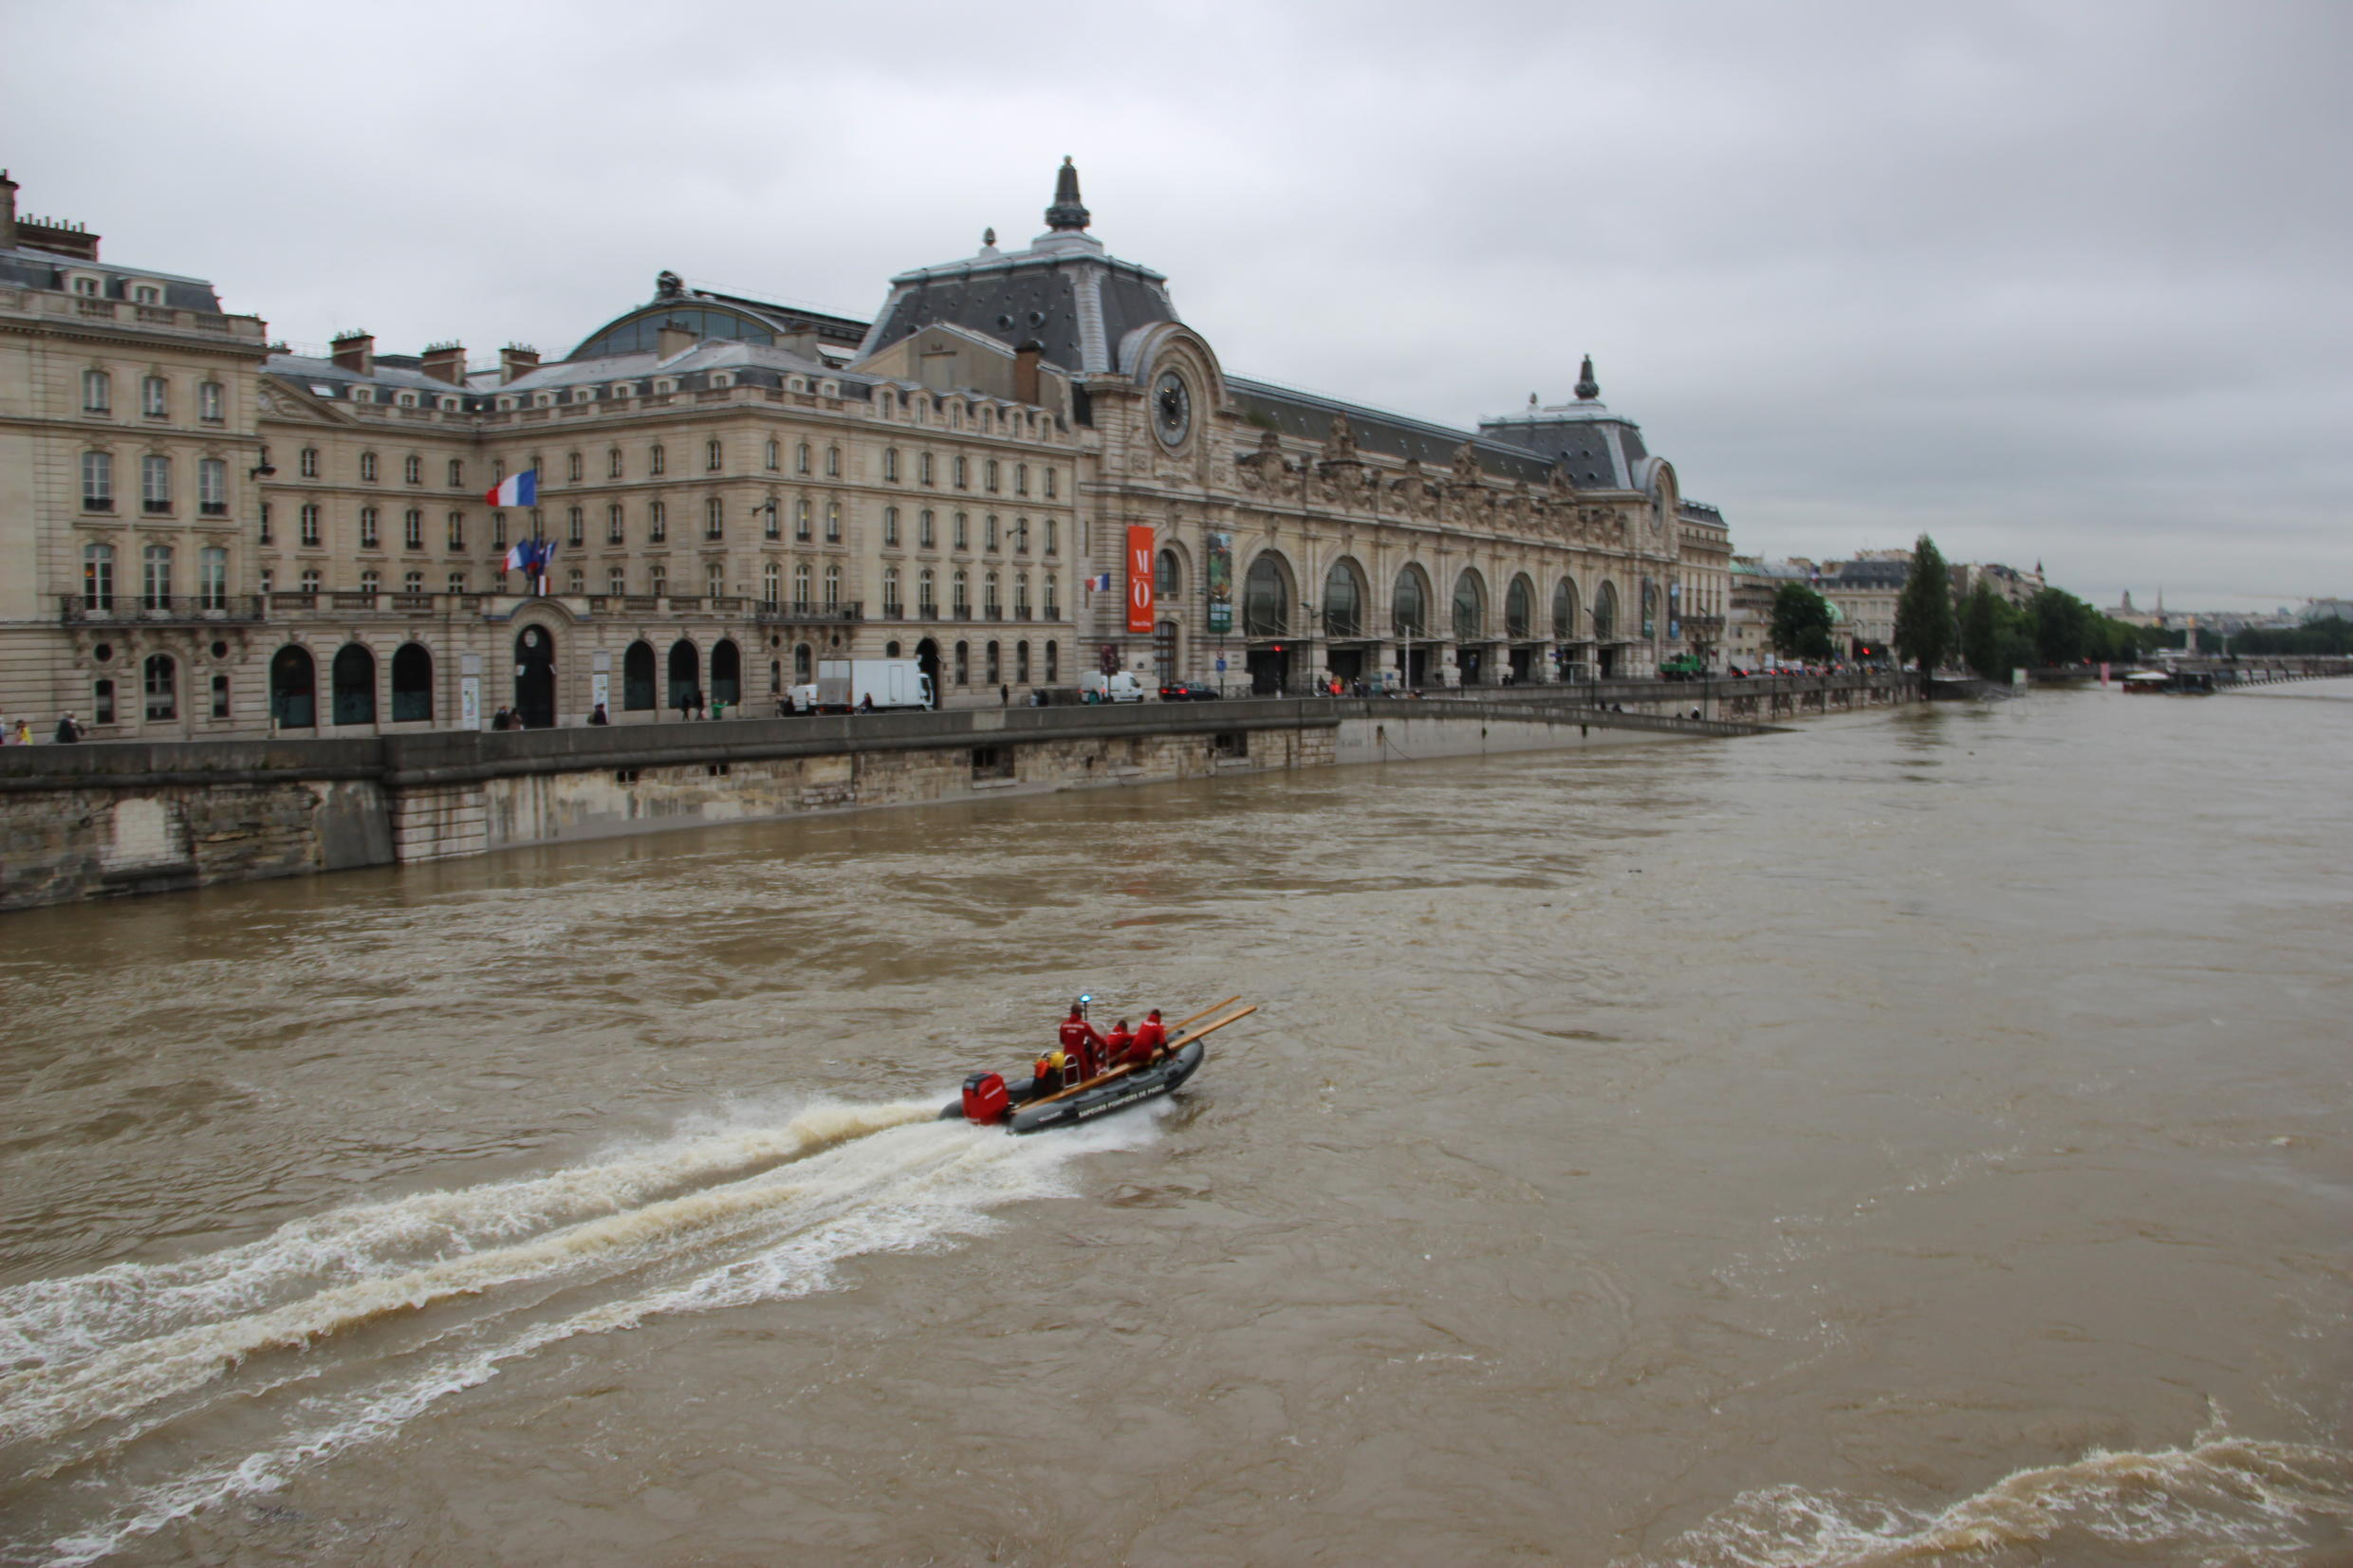 The Louvre and Orsay museums, home to priceless works of art and historical artefacts, both shut their doors to the public on Friday.